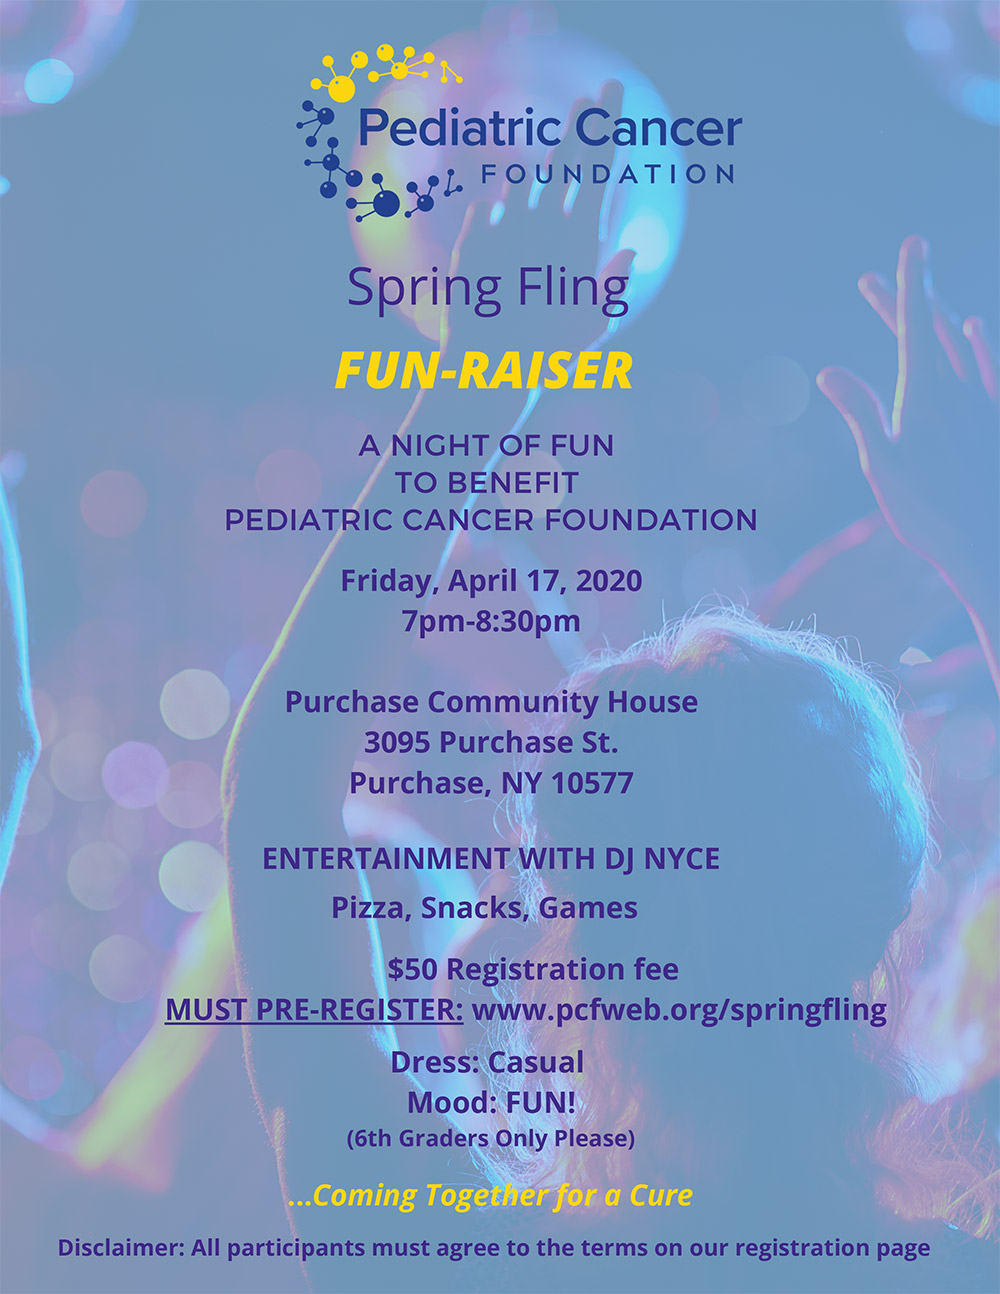 Spring Fling Fun-Raiser April 17